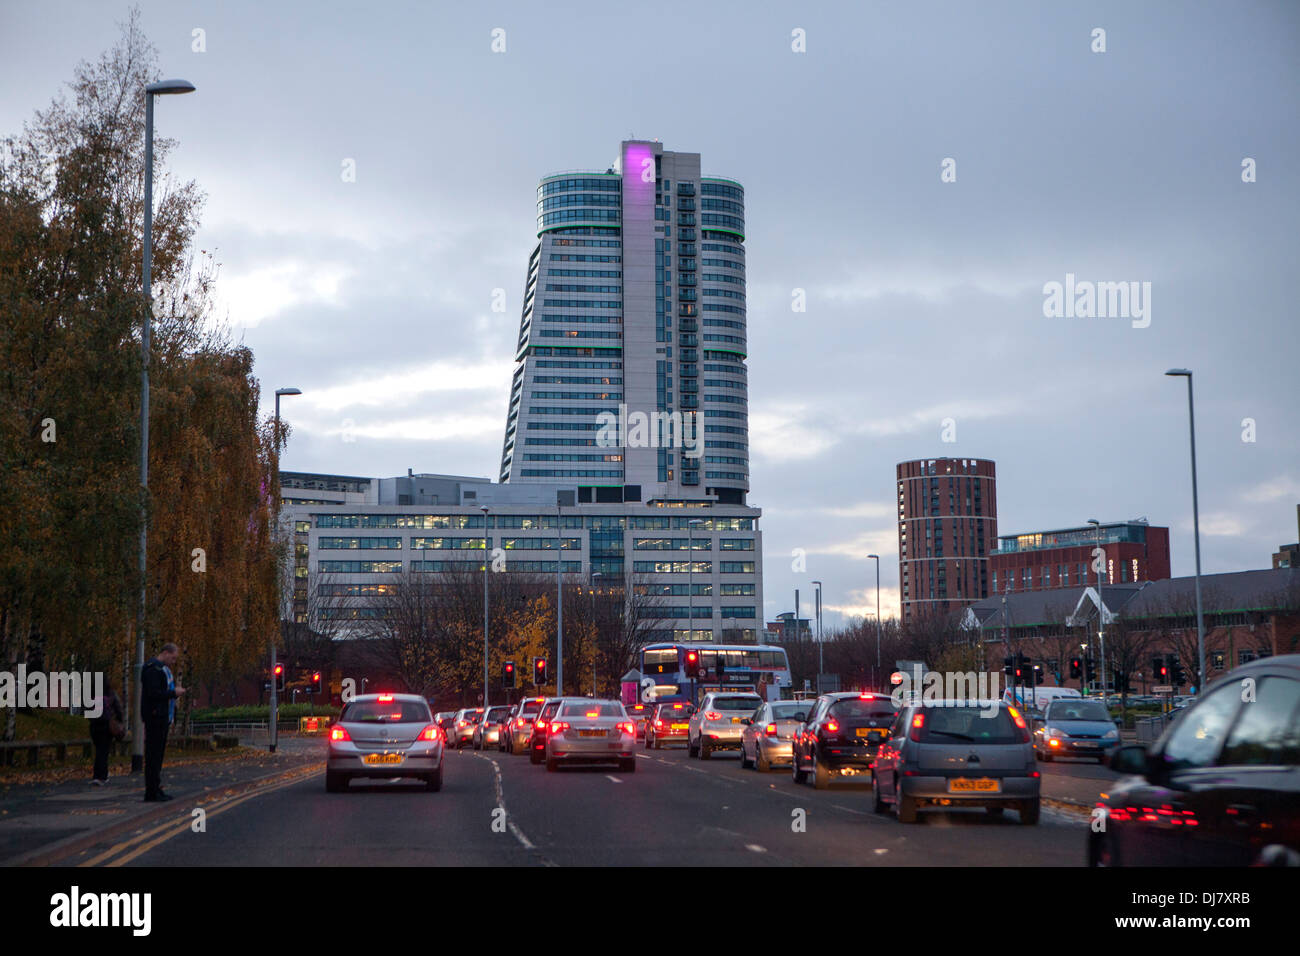 Bridgewater Place, nicknamed The Dalek in Leeds city centre West Yorkshire at dusk - Stock Image